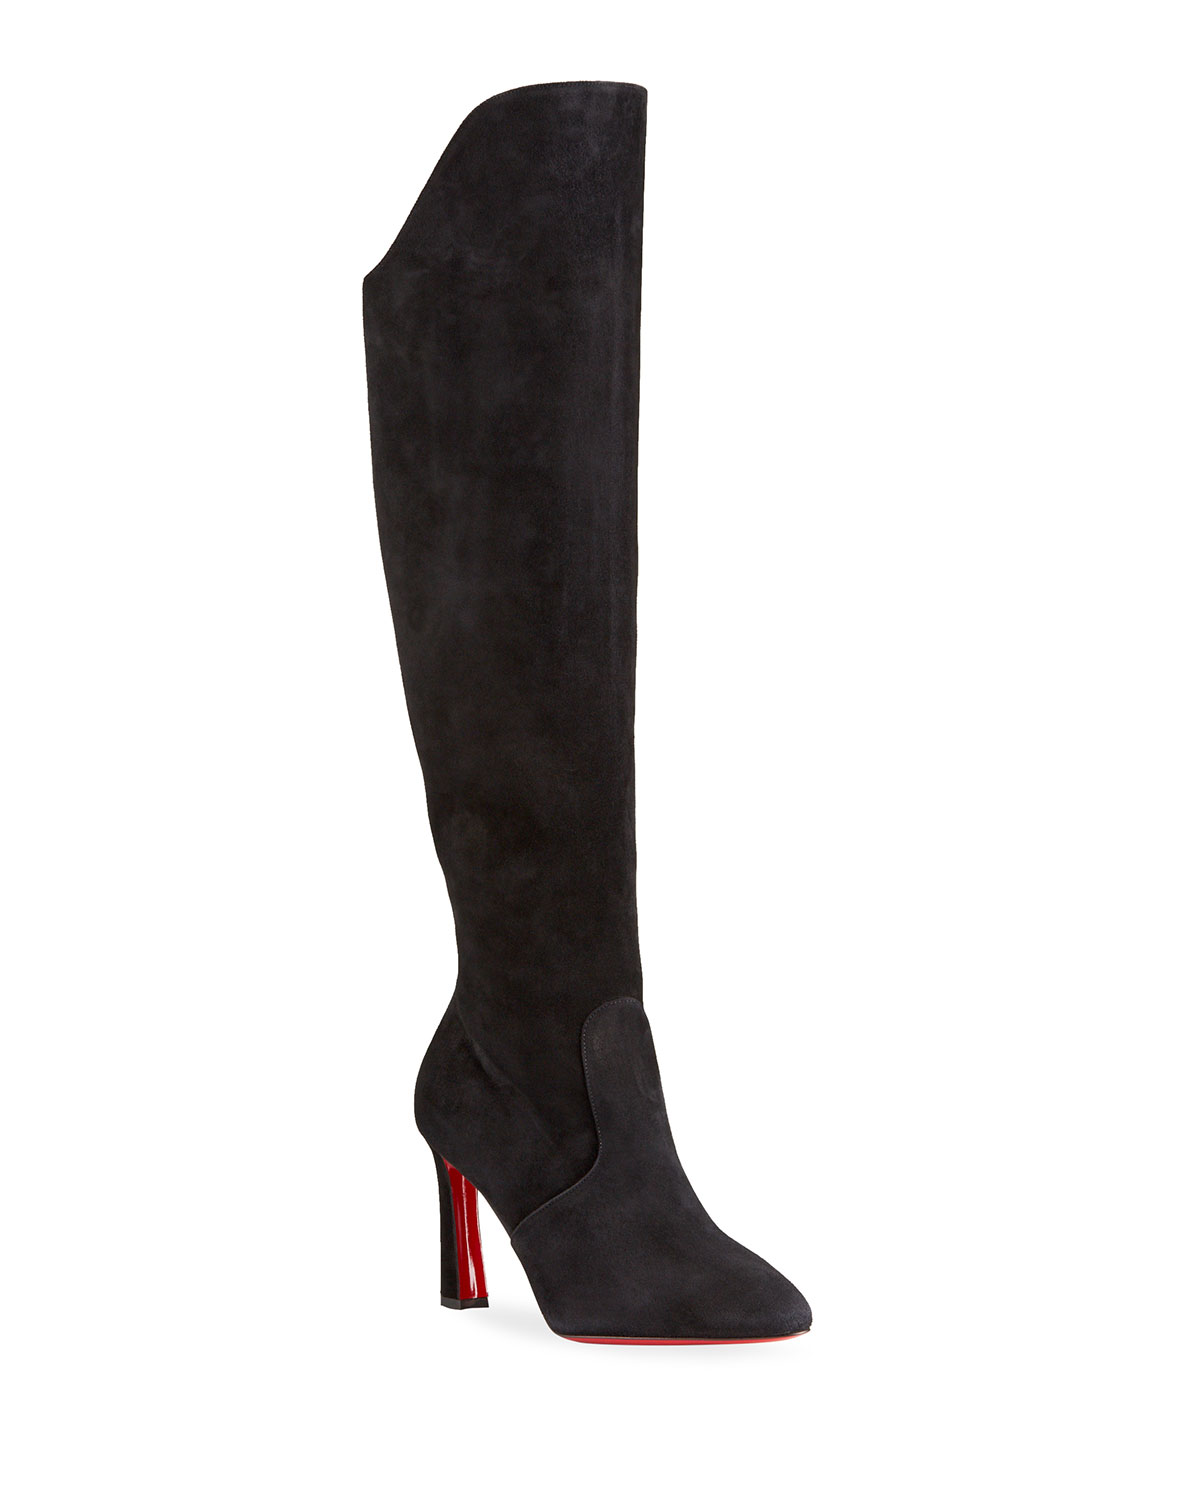 Christian Louboutin Eleonor Tall Suede Red Sole Boots